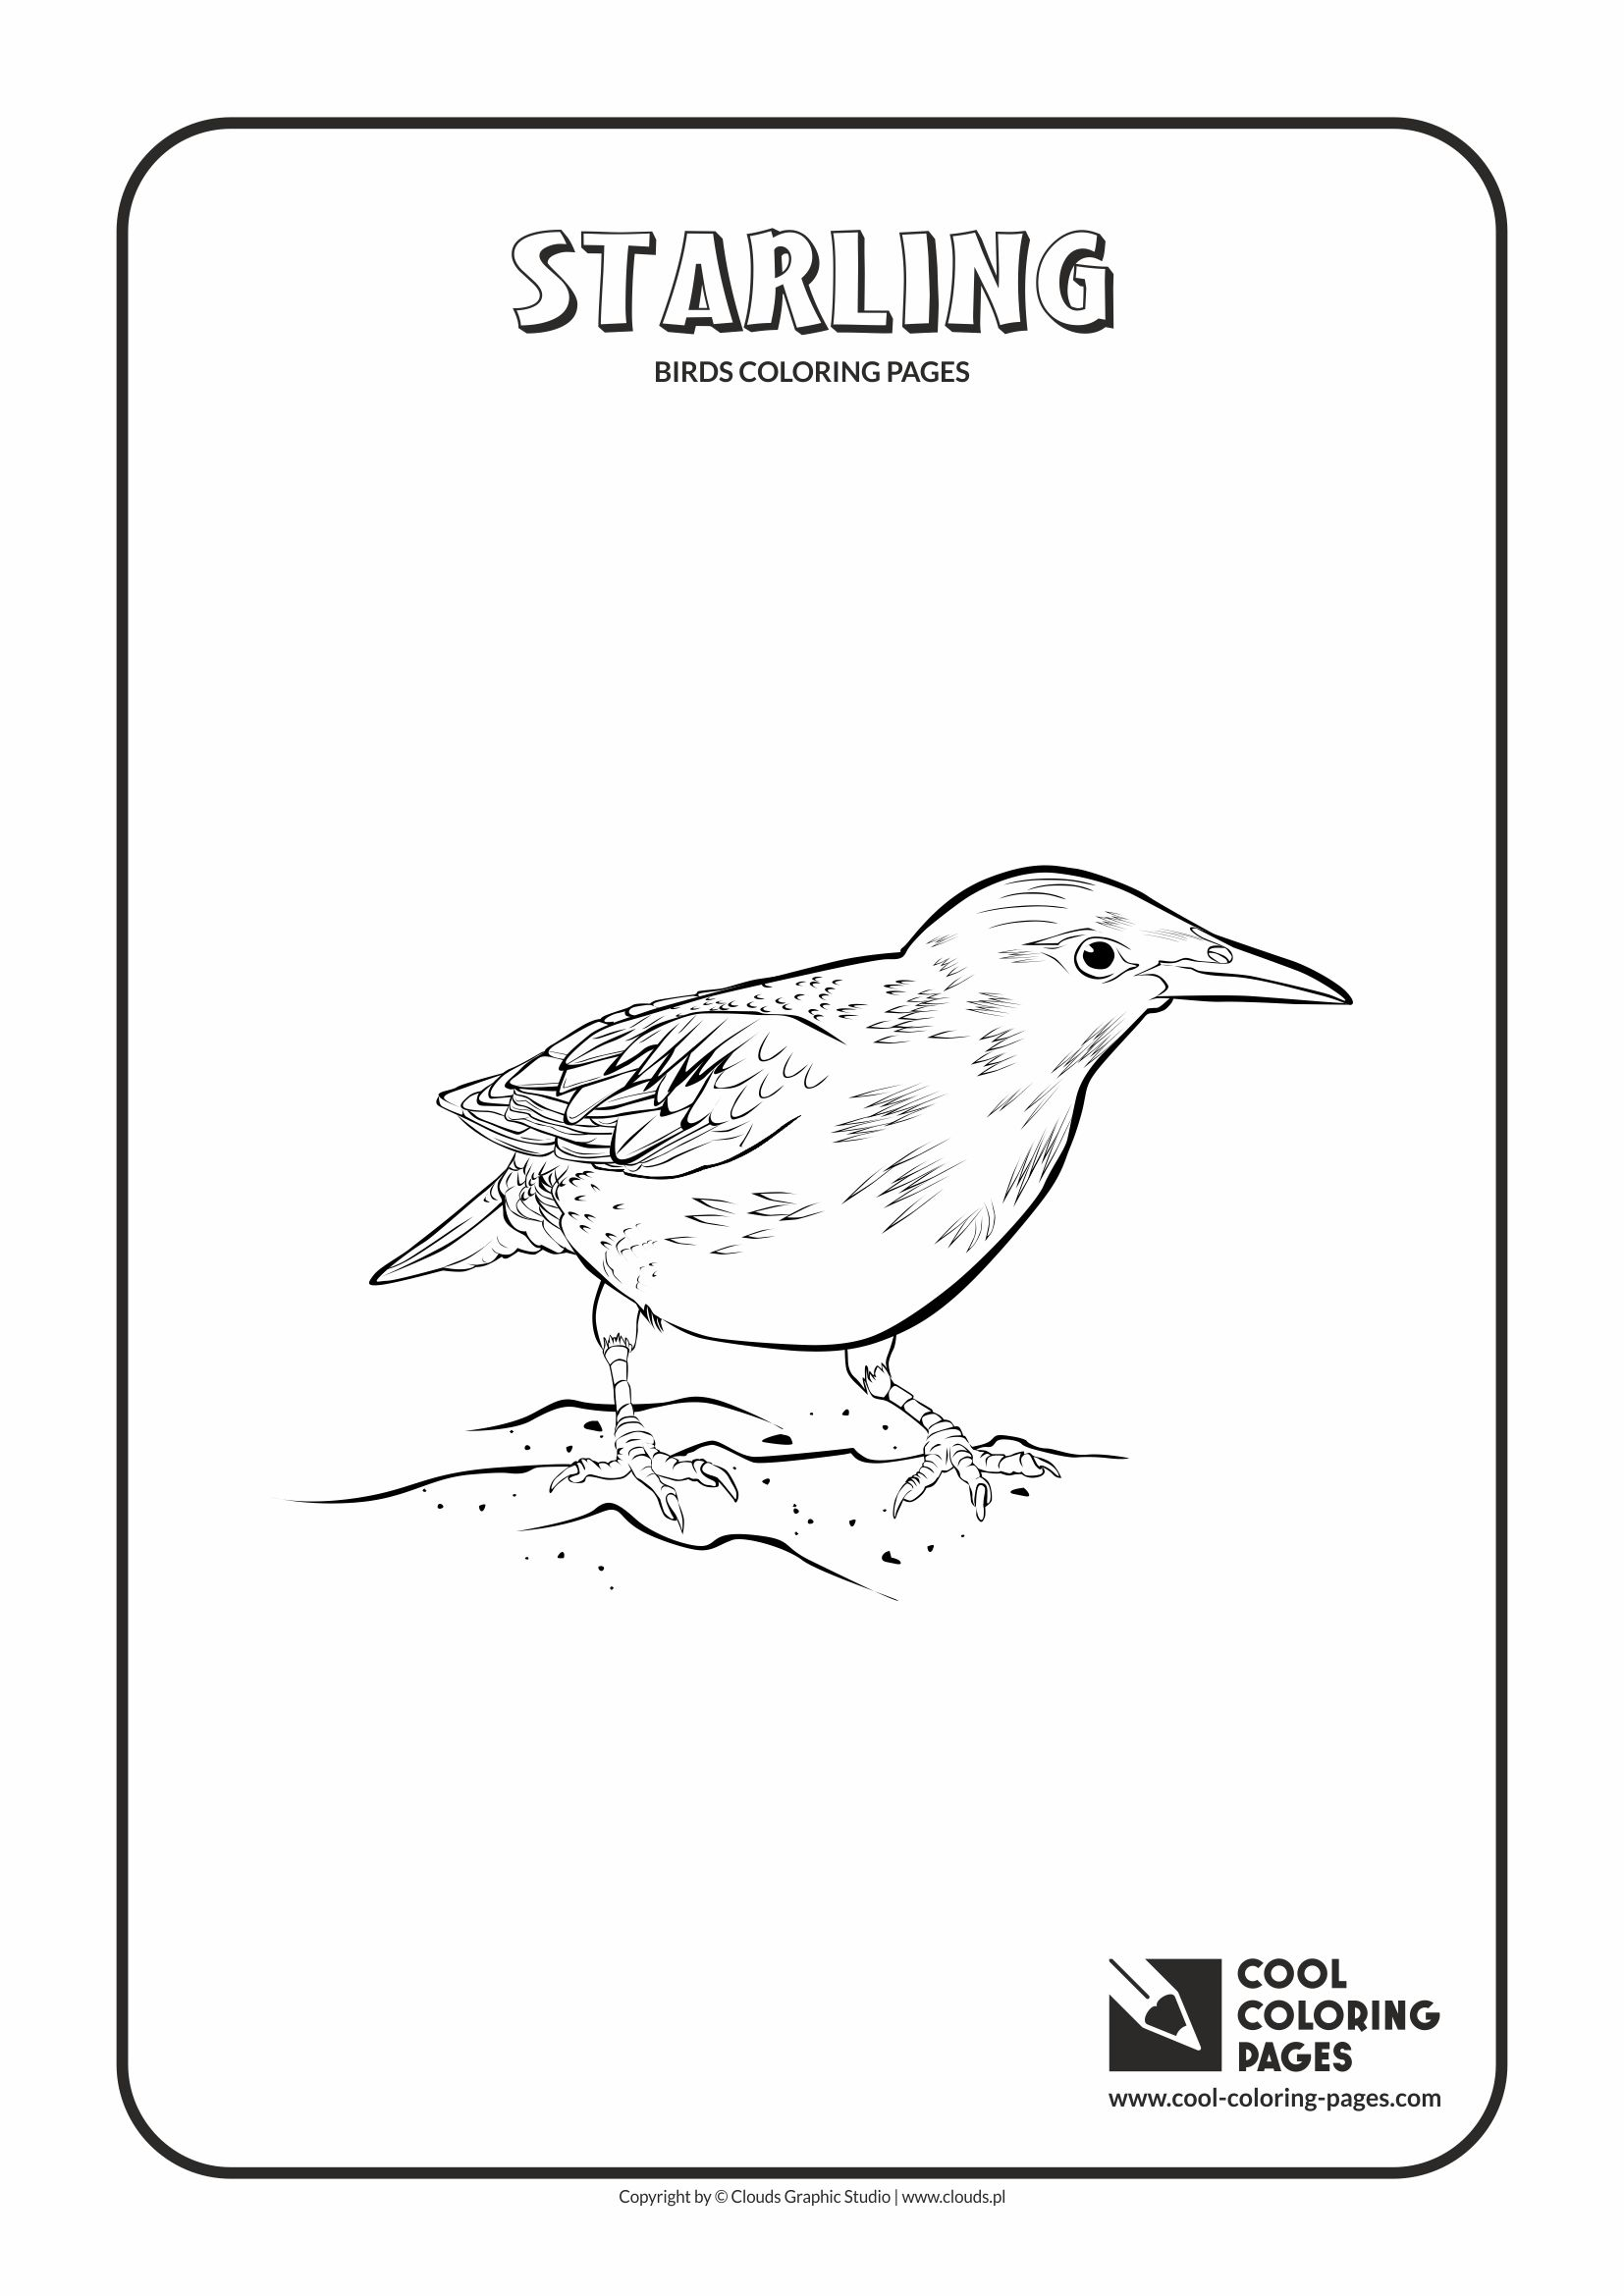 Cool Coloring Pages - Animals / Starling / Coloring page with starling